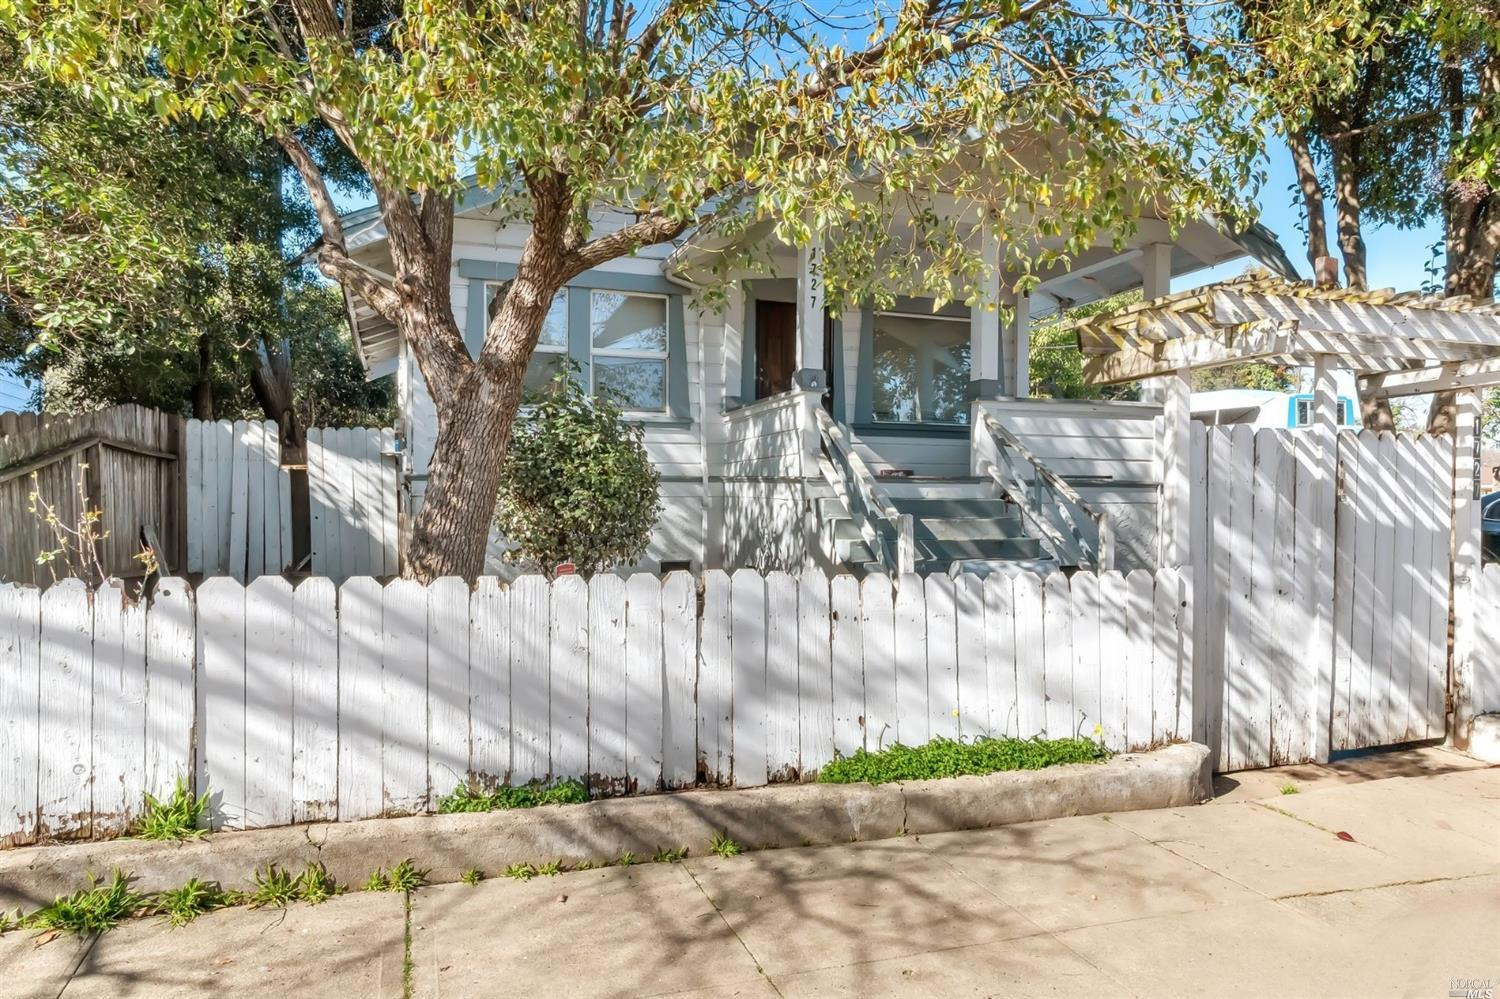 Incredible Investor Opportunity. Multi-Unit property.  Houses will be sold as is condition.  With some TLC, these two could be amazing.  Spacious back yards.  One APN for both units. Two PG&E meters. See Virtual Tour Link here:  https://we.tl/t-3U5Ru9cD1J